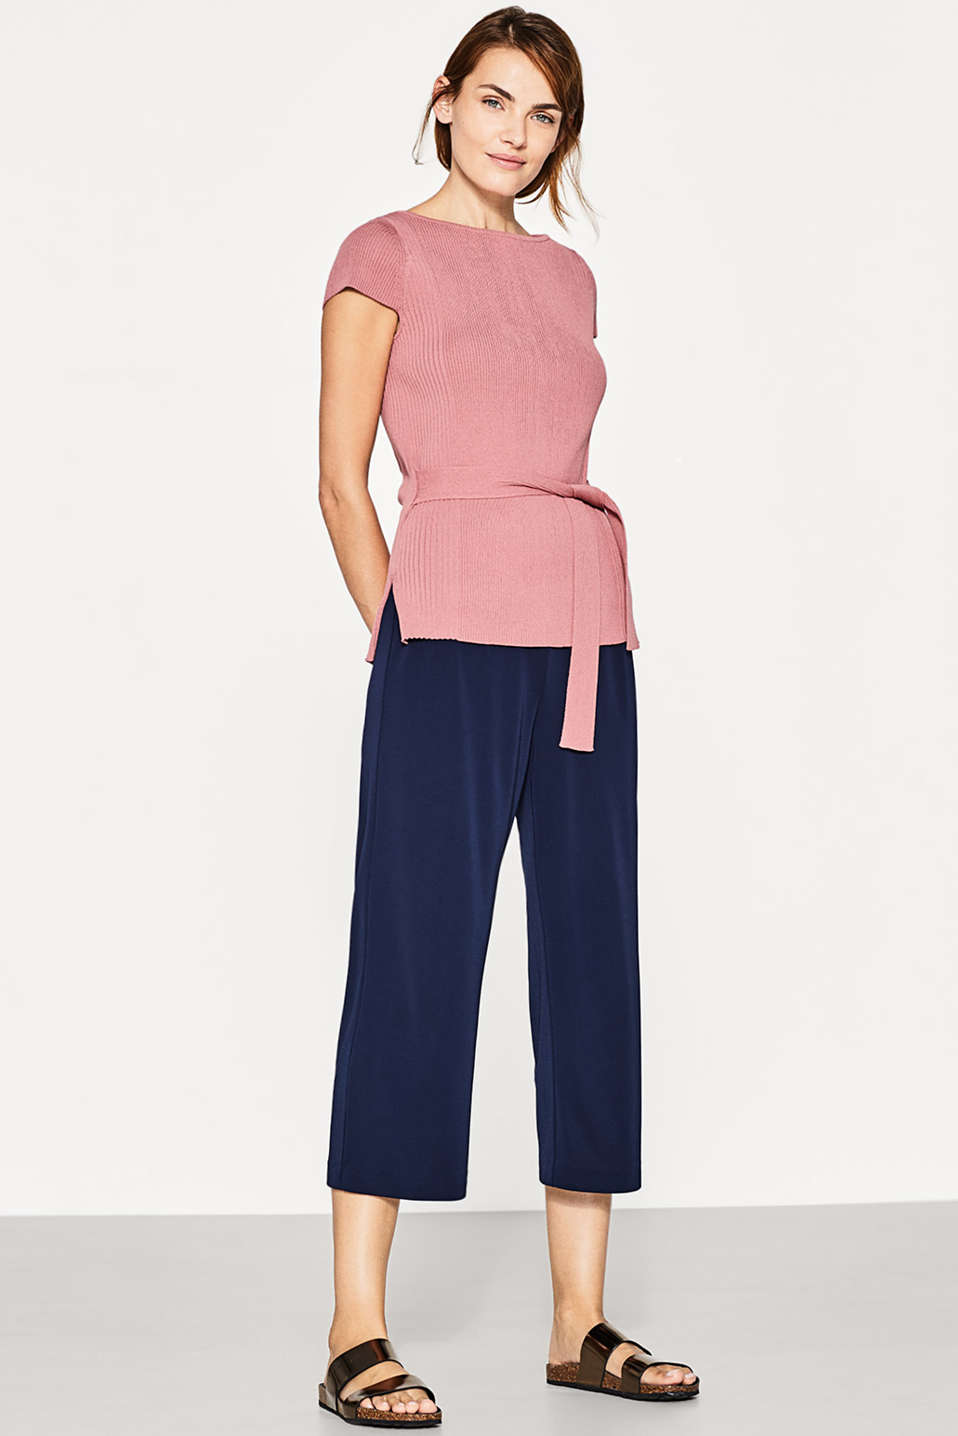 Esprit - Figure-enhancing crêpe yarn jumper + belt